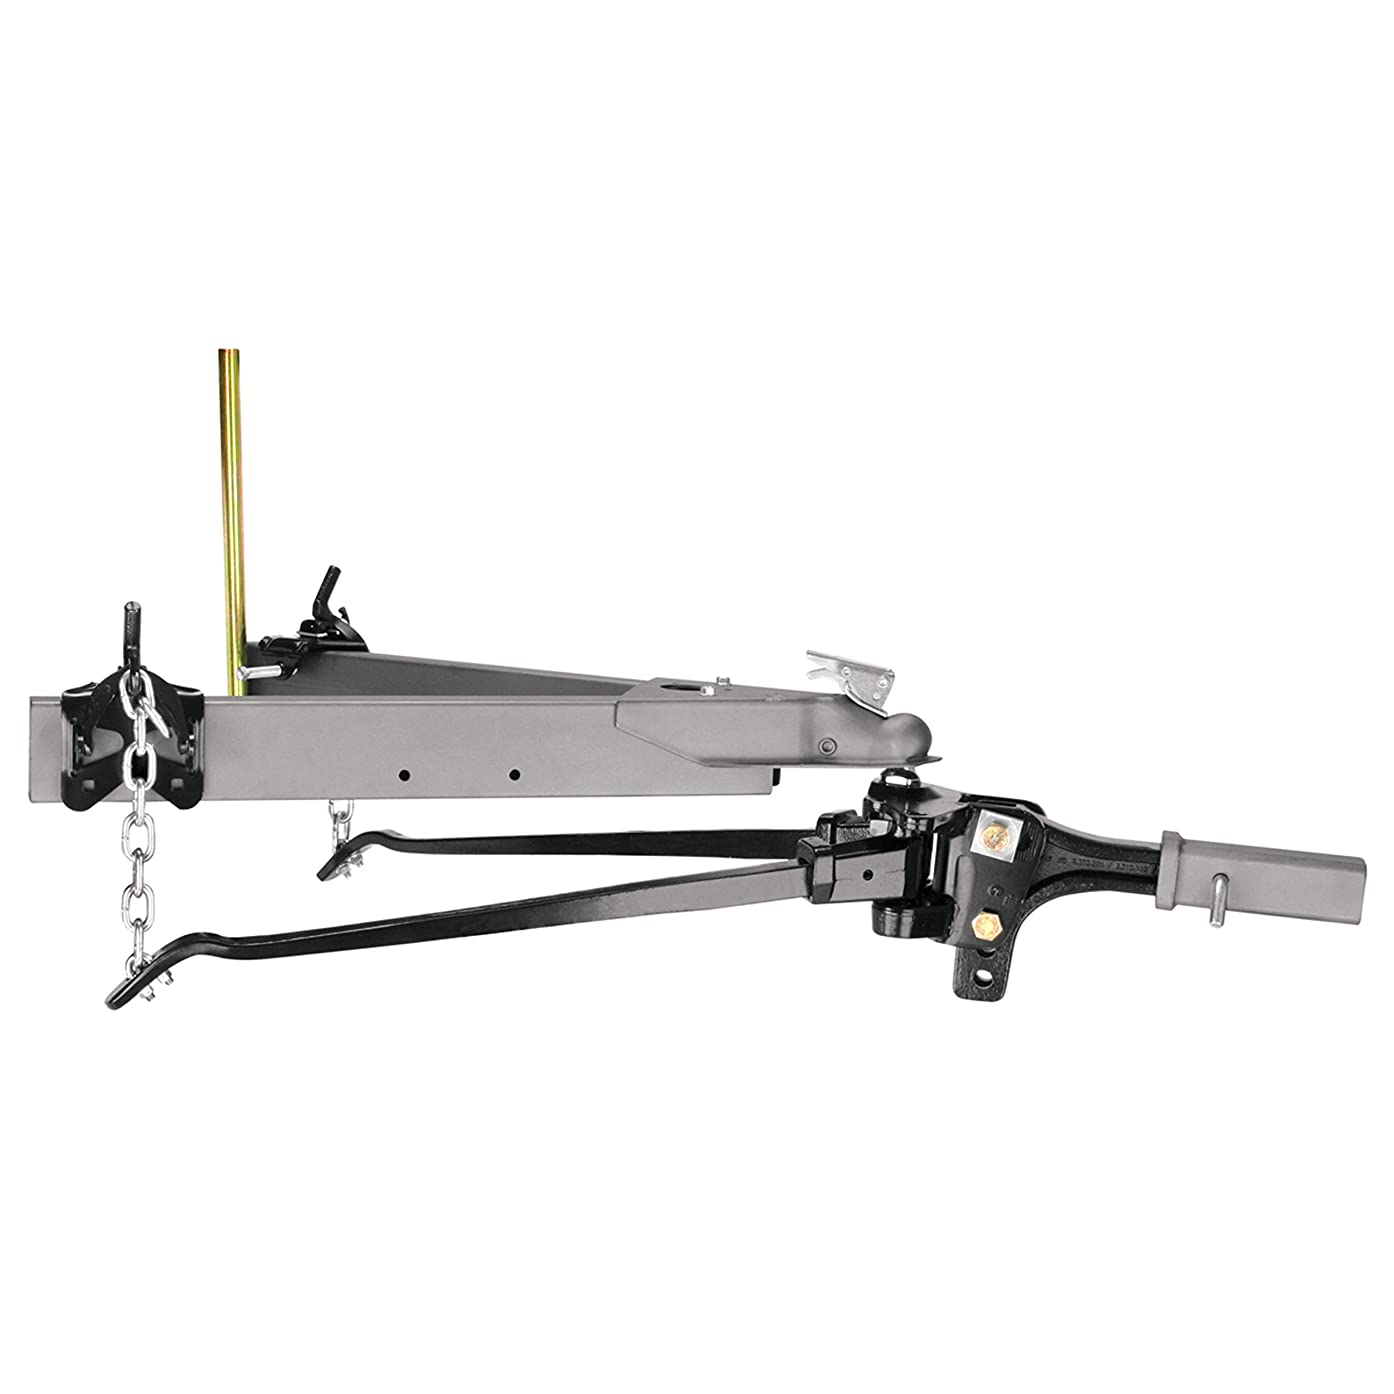 Reese 66540 Reese High-Performance Trunnion Kit with Adjustable Hitch Bar - 600 lbs.